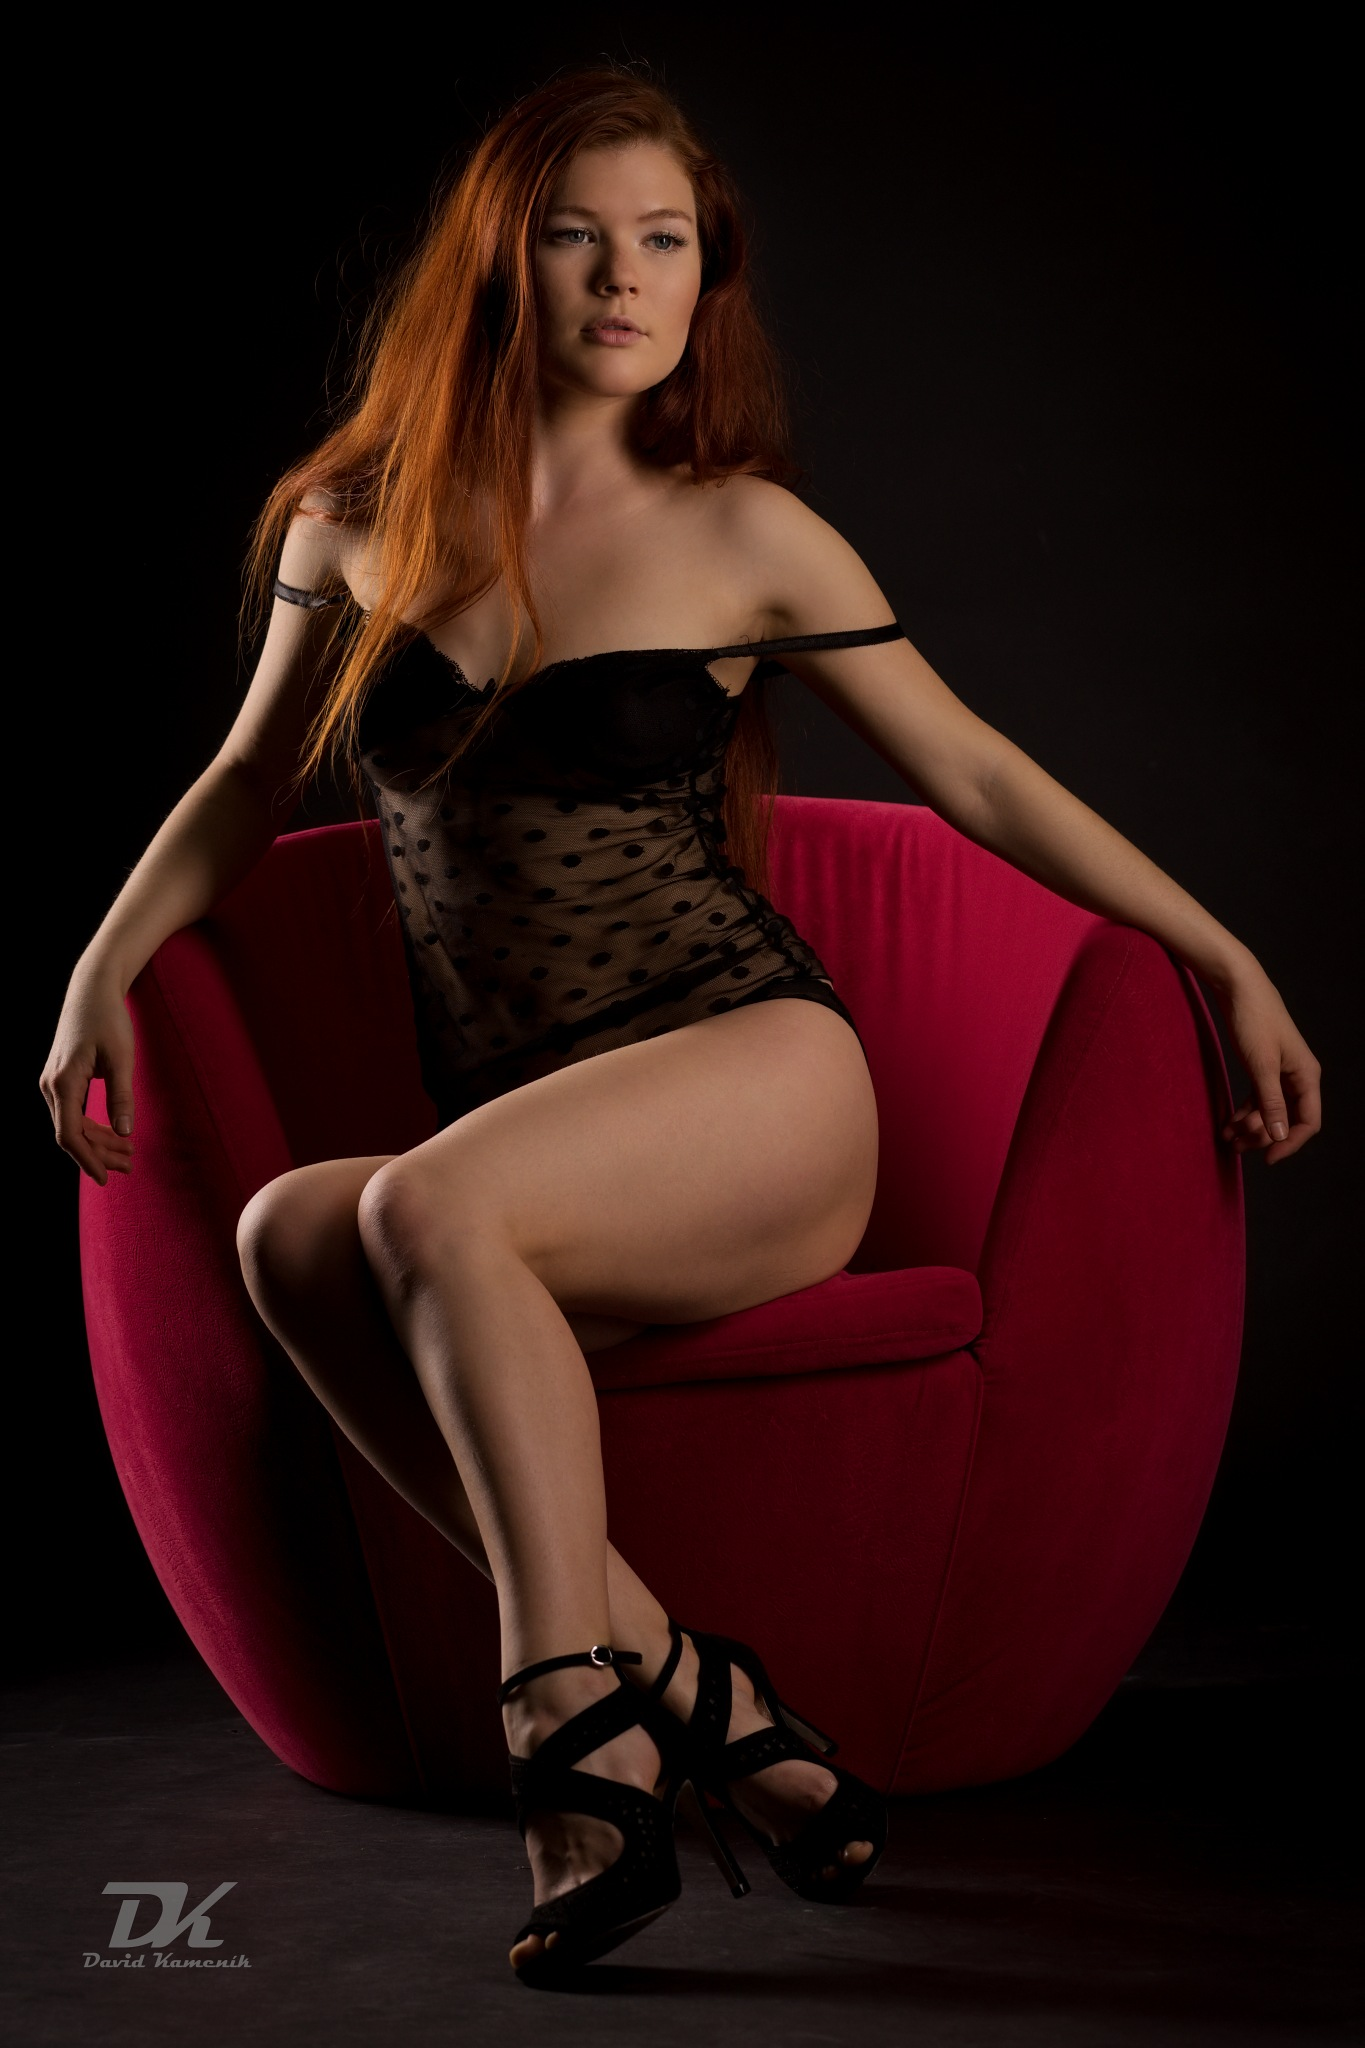 Lady in red chair